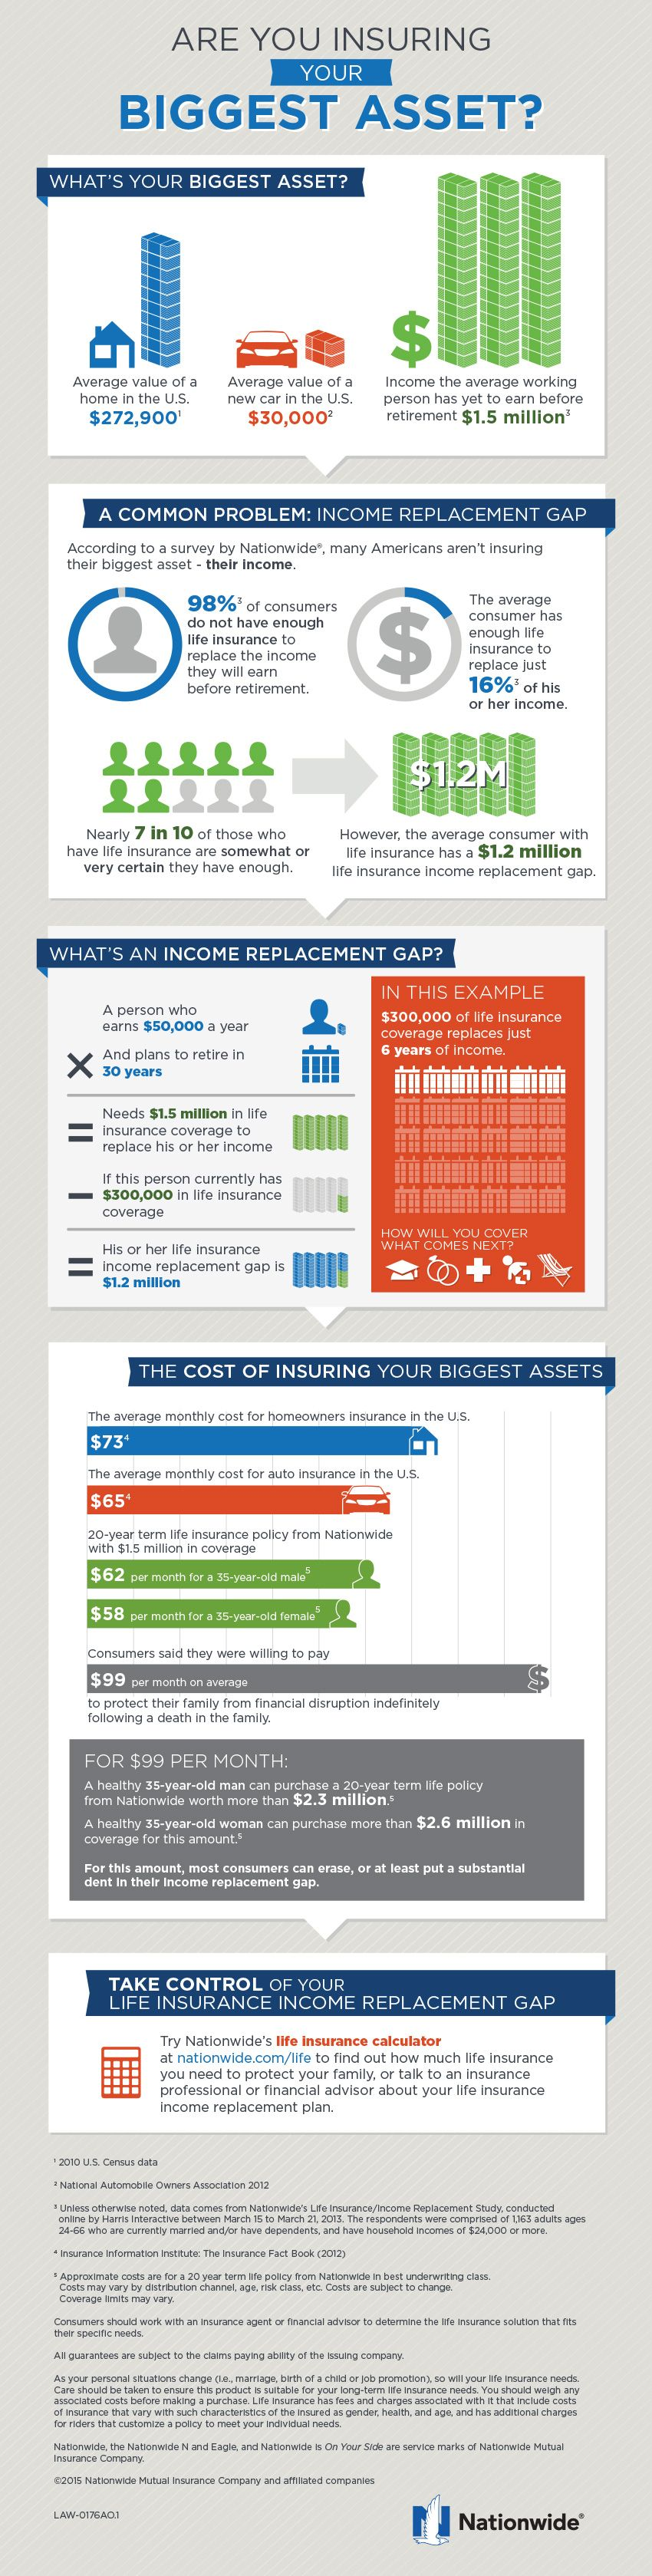 Are You Insuring Your Biggest Asset Icon Style Discovery